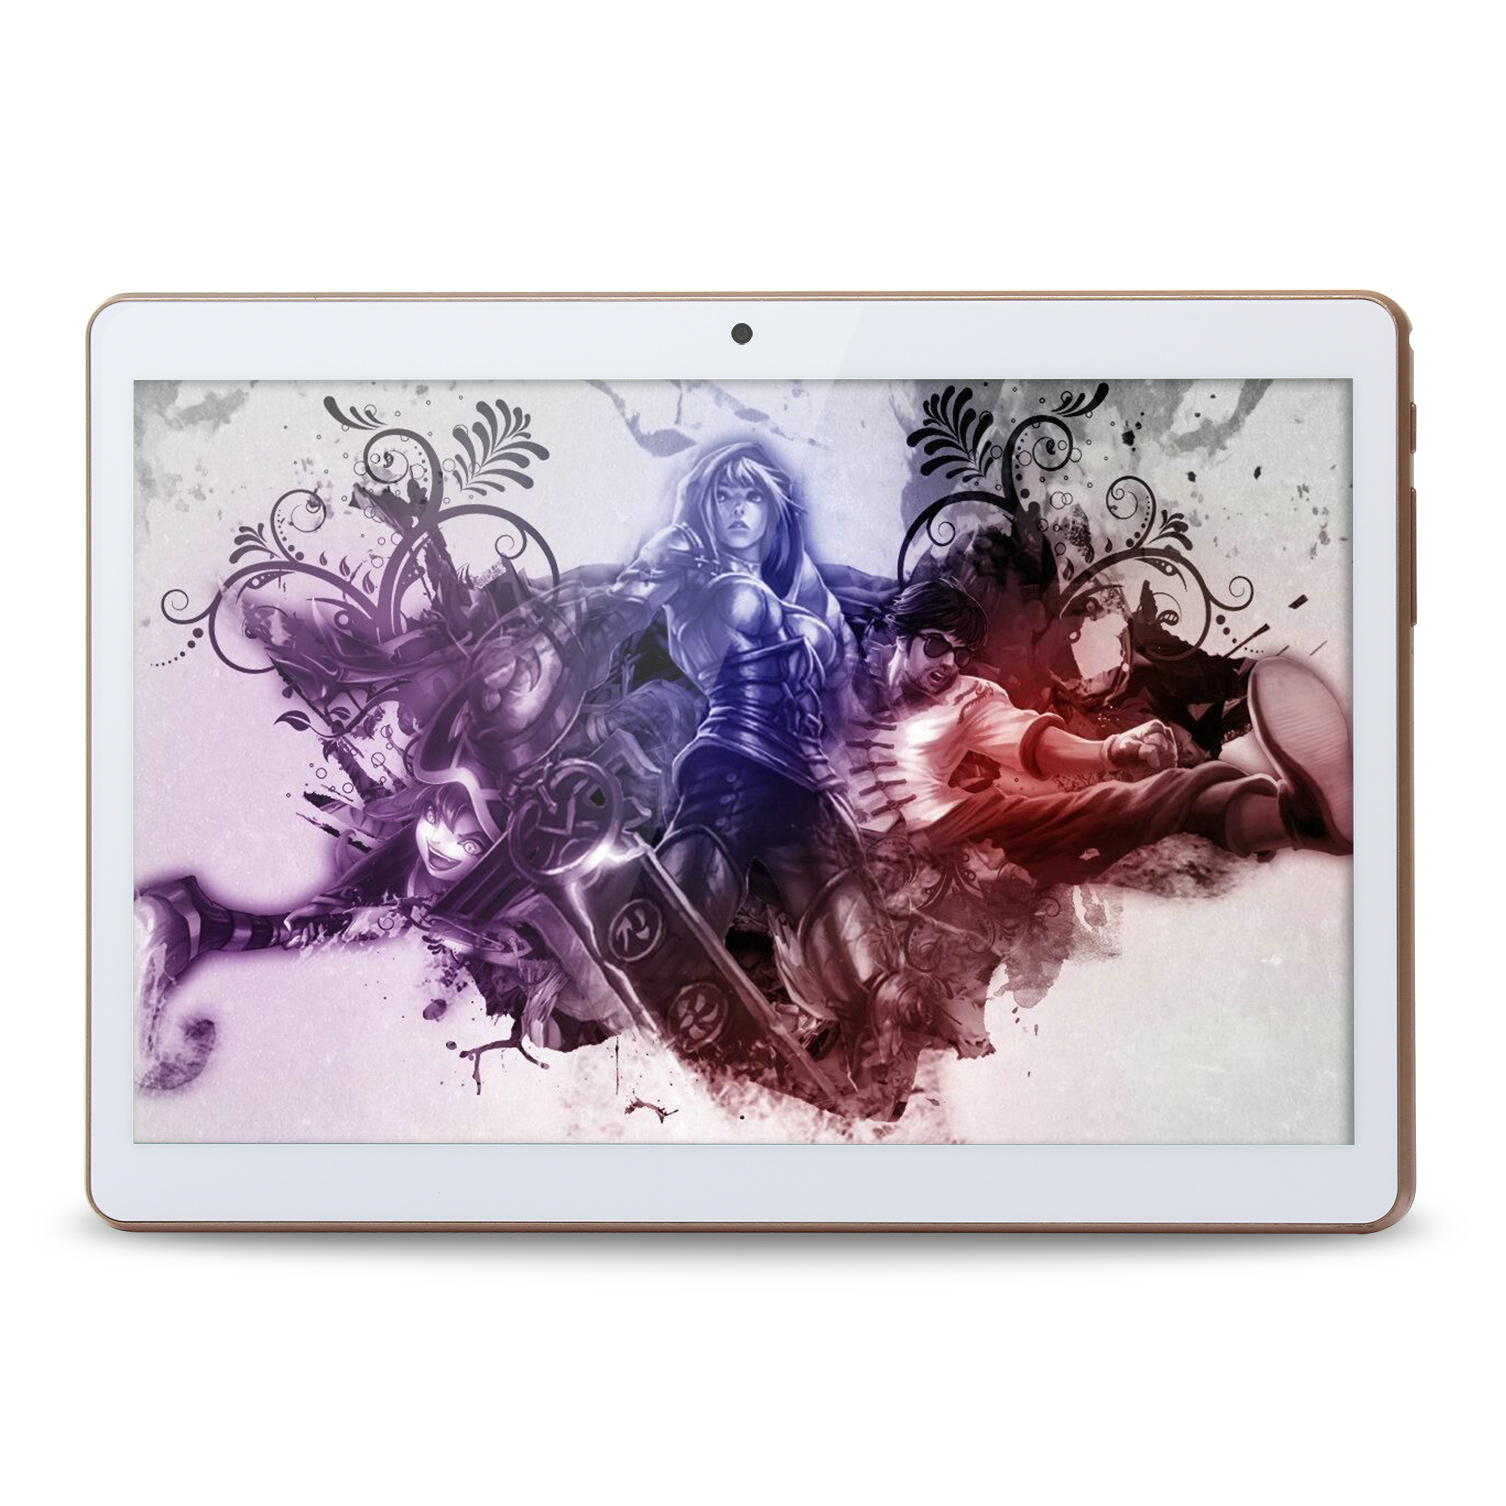 FUGN Original Phone Tablet 10 inch 3G Phone Call Android Tablets PC Octa Core 4G Wifi Dual Cameras Smart Tablet With GPS 8 9.6'' original 7 shockproof rugged waterproof tablet pc octa cores cell phone gnss gps 2 5 glonass lf uhf rfid android 4 2 zigbee nfc